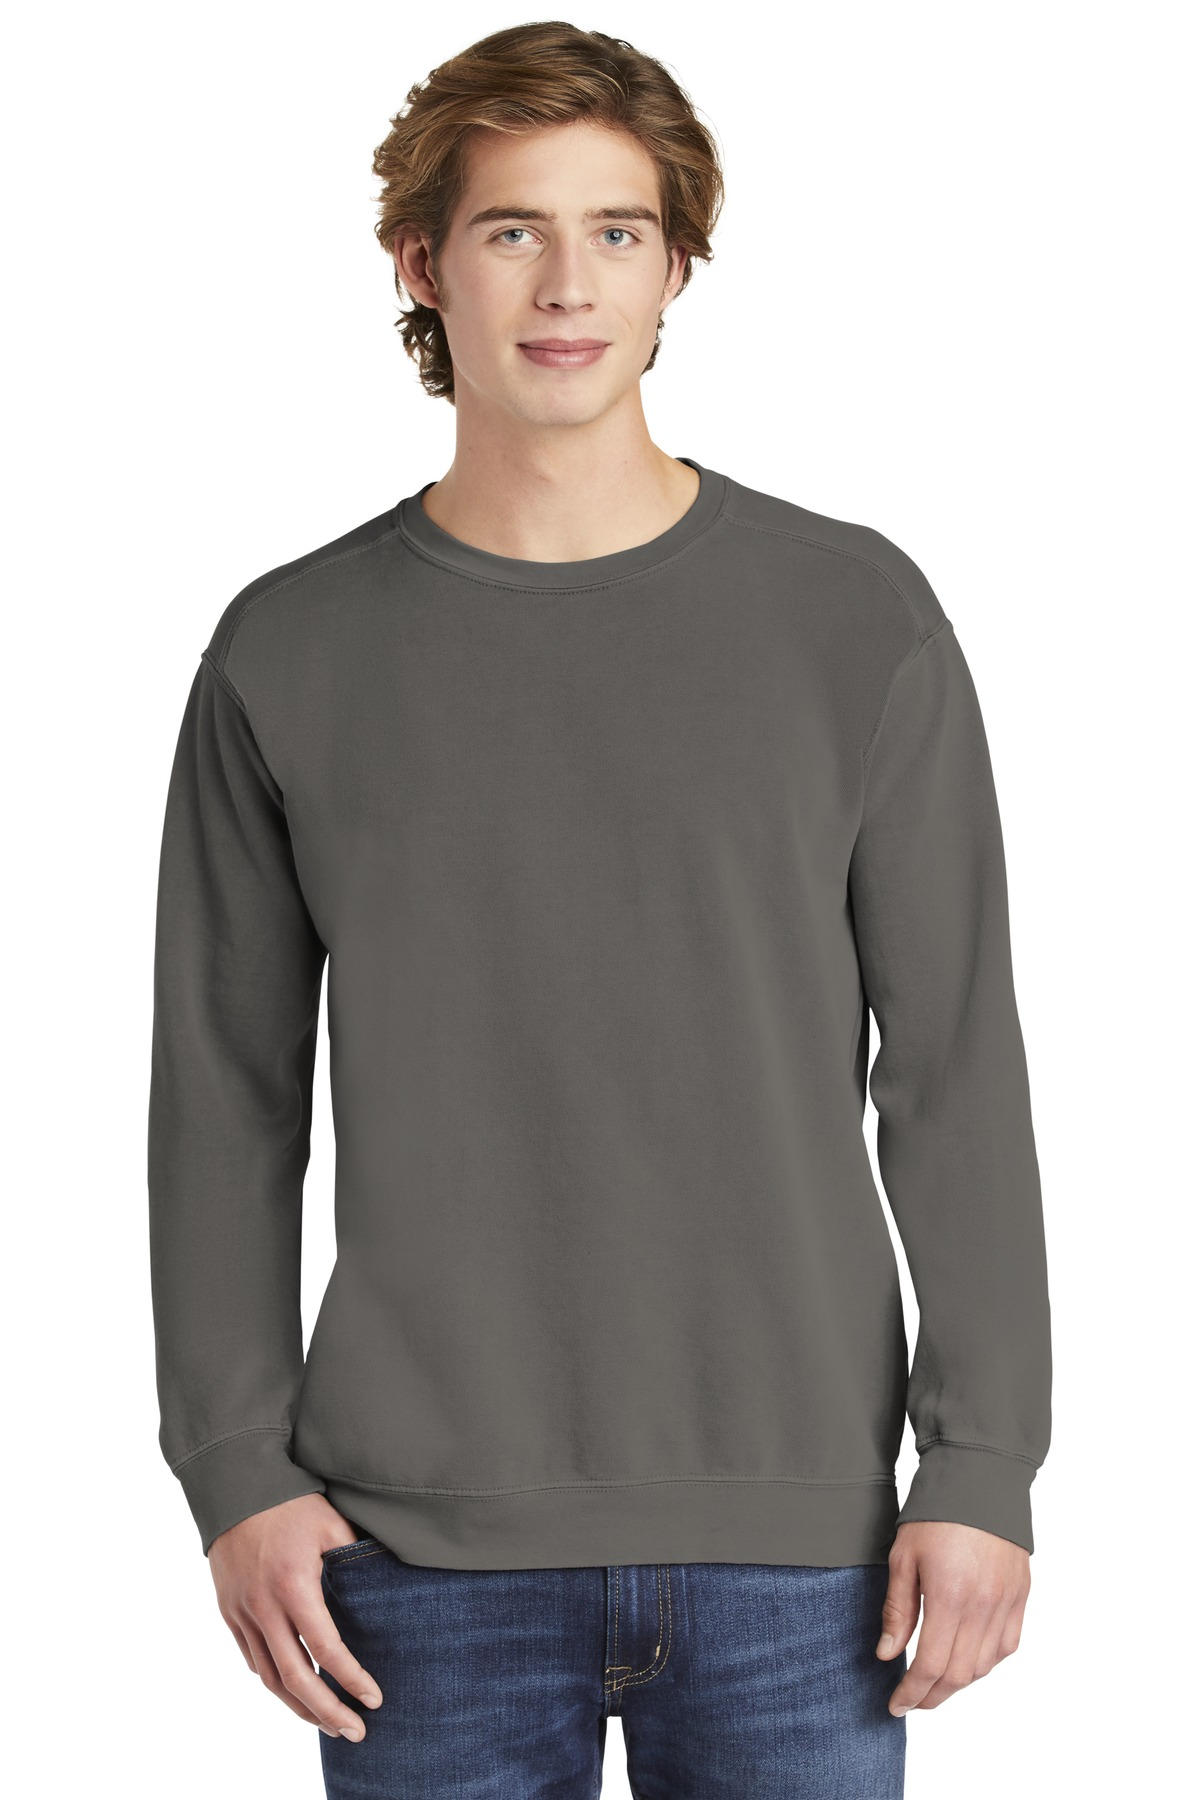 COMFORT COLORS  ®  Ring Spun Crewneck Sweatshirt. 1566 - Grey